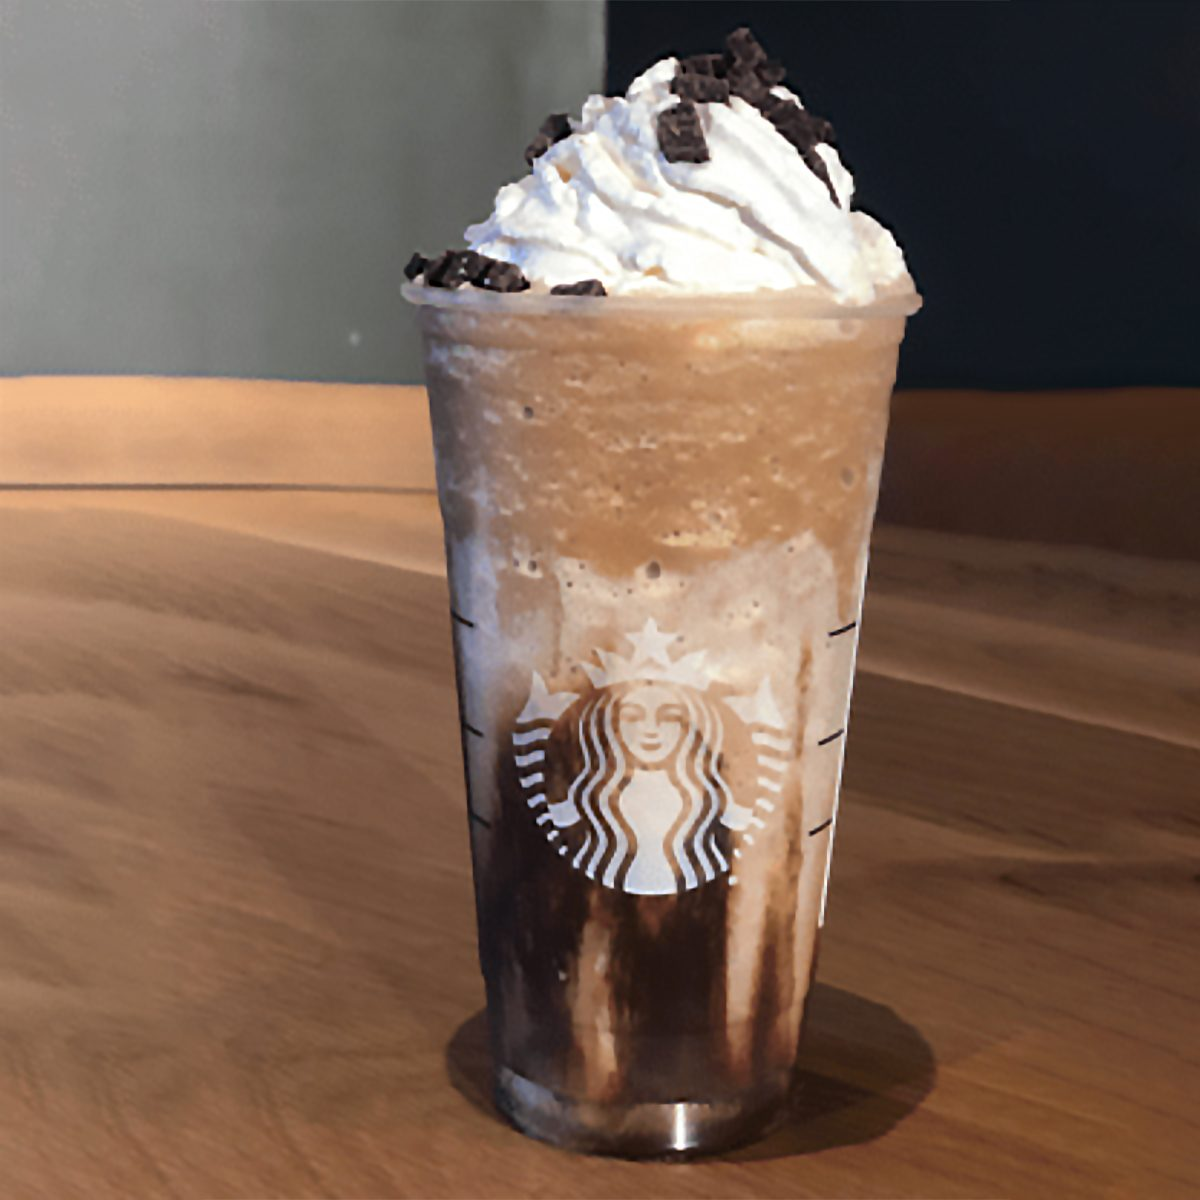 STARBUCKS HAS A SECRET MENU JACK SKELLINGTON FRAPPUCCINO square crop